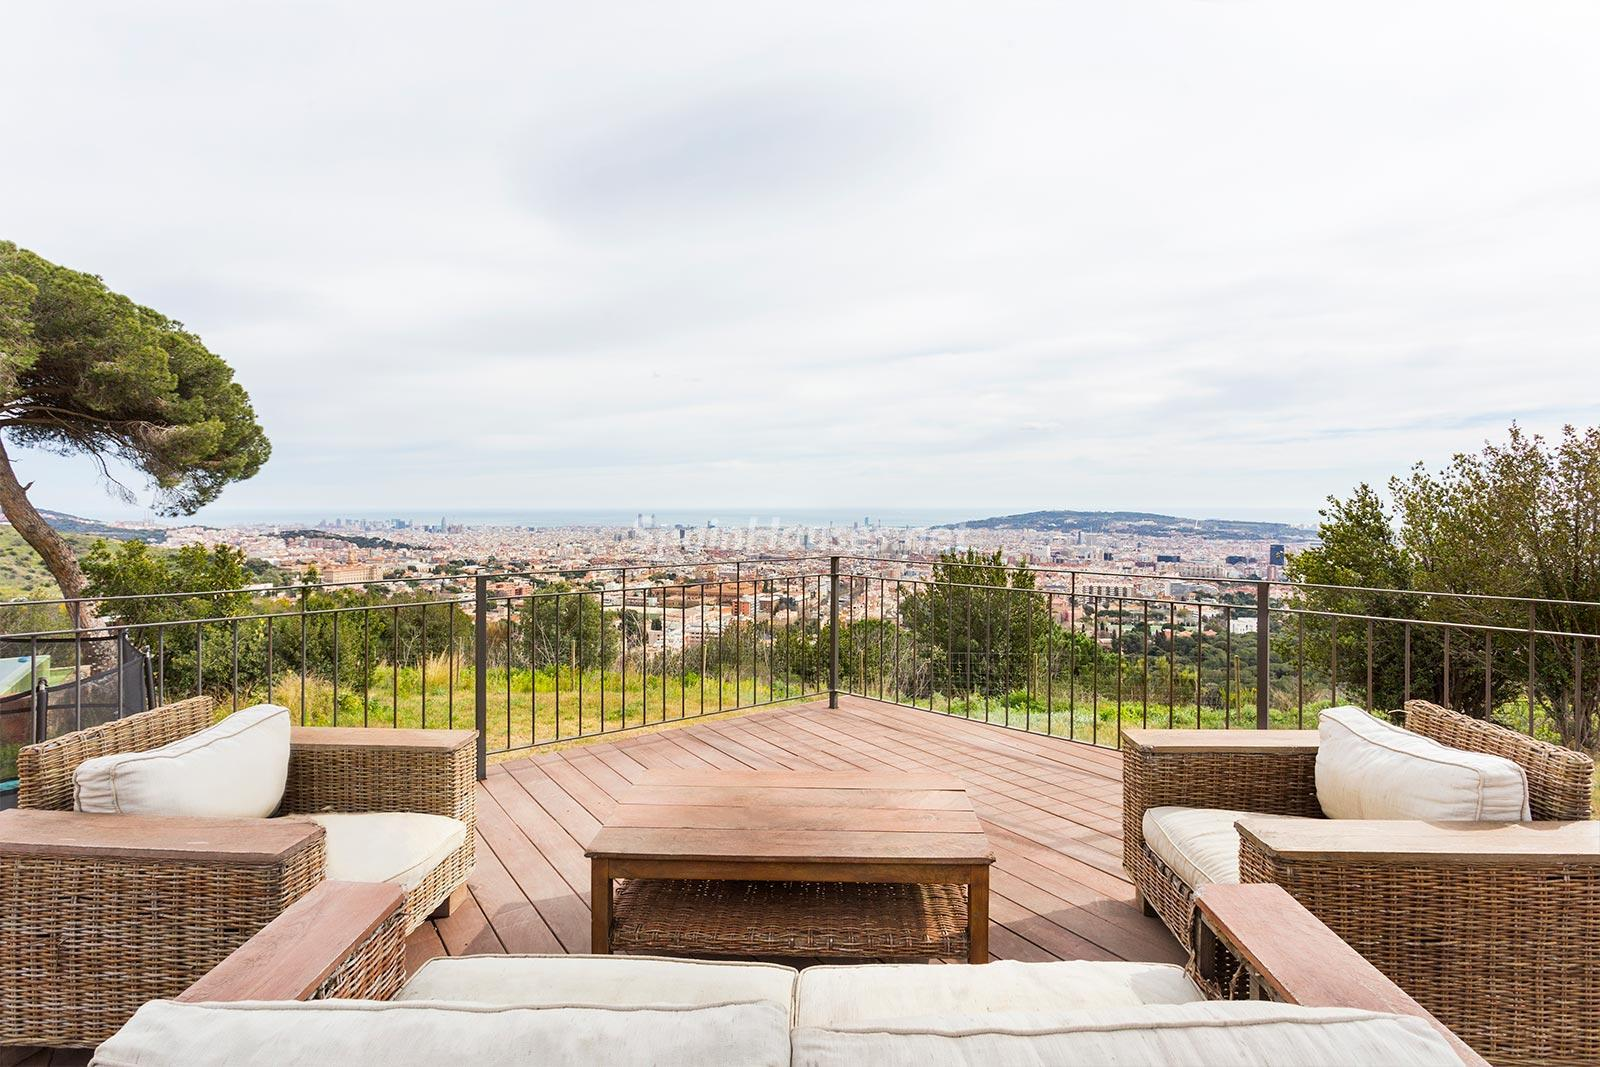 19. House for sale in Sarrià Barcelona - Exclusive 8 Bedroom Villa For Sale in Sarrià, Barcelona